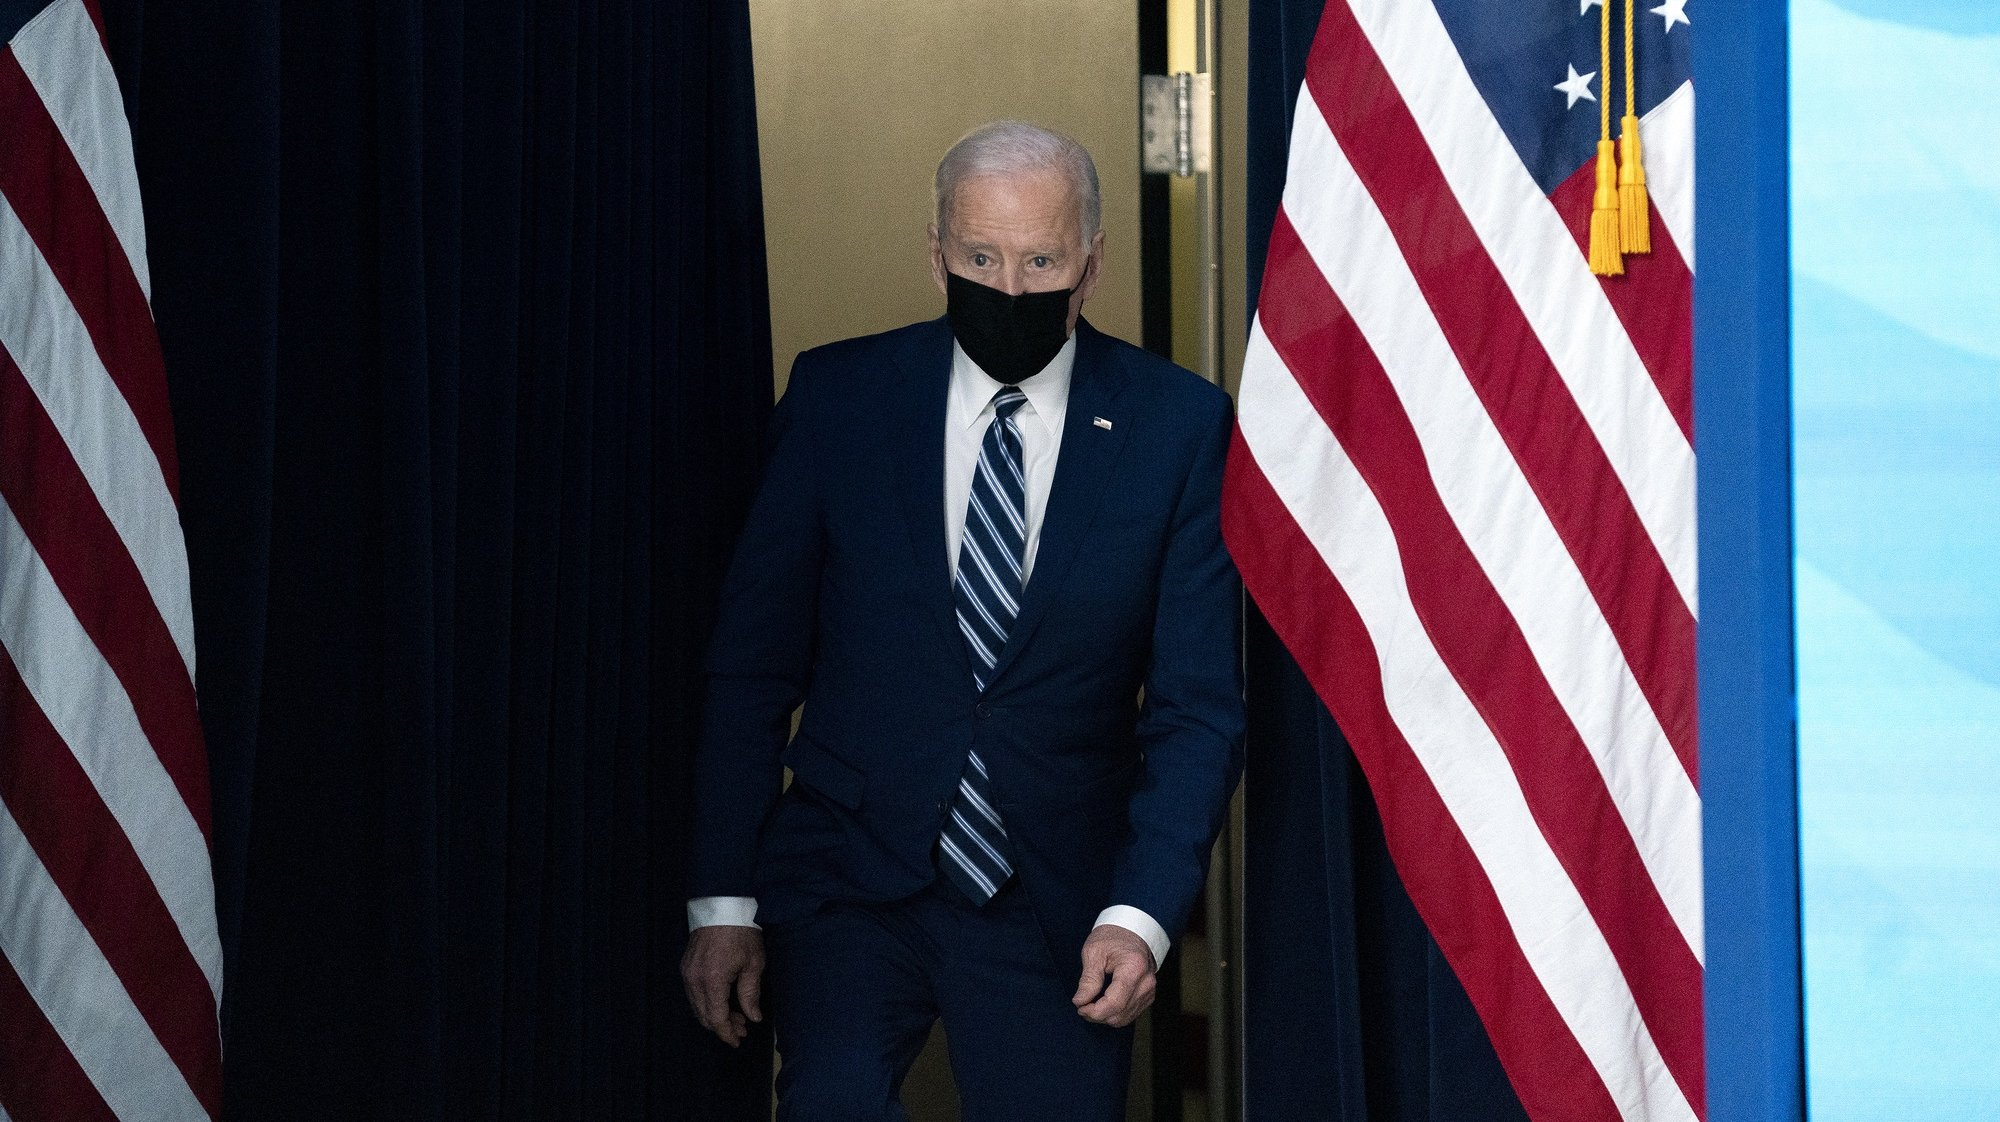 epa09105437 US President Joe Biden arrives to deliver remarks on the state of the Covid-19 vaccine in the South Court Auditorium of the White House in Washington, DC, USA, on 29 March 2021.  EPA/Stefani Reynolds / POOL